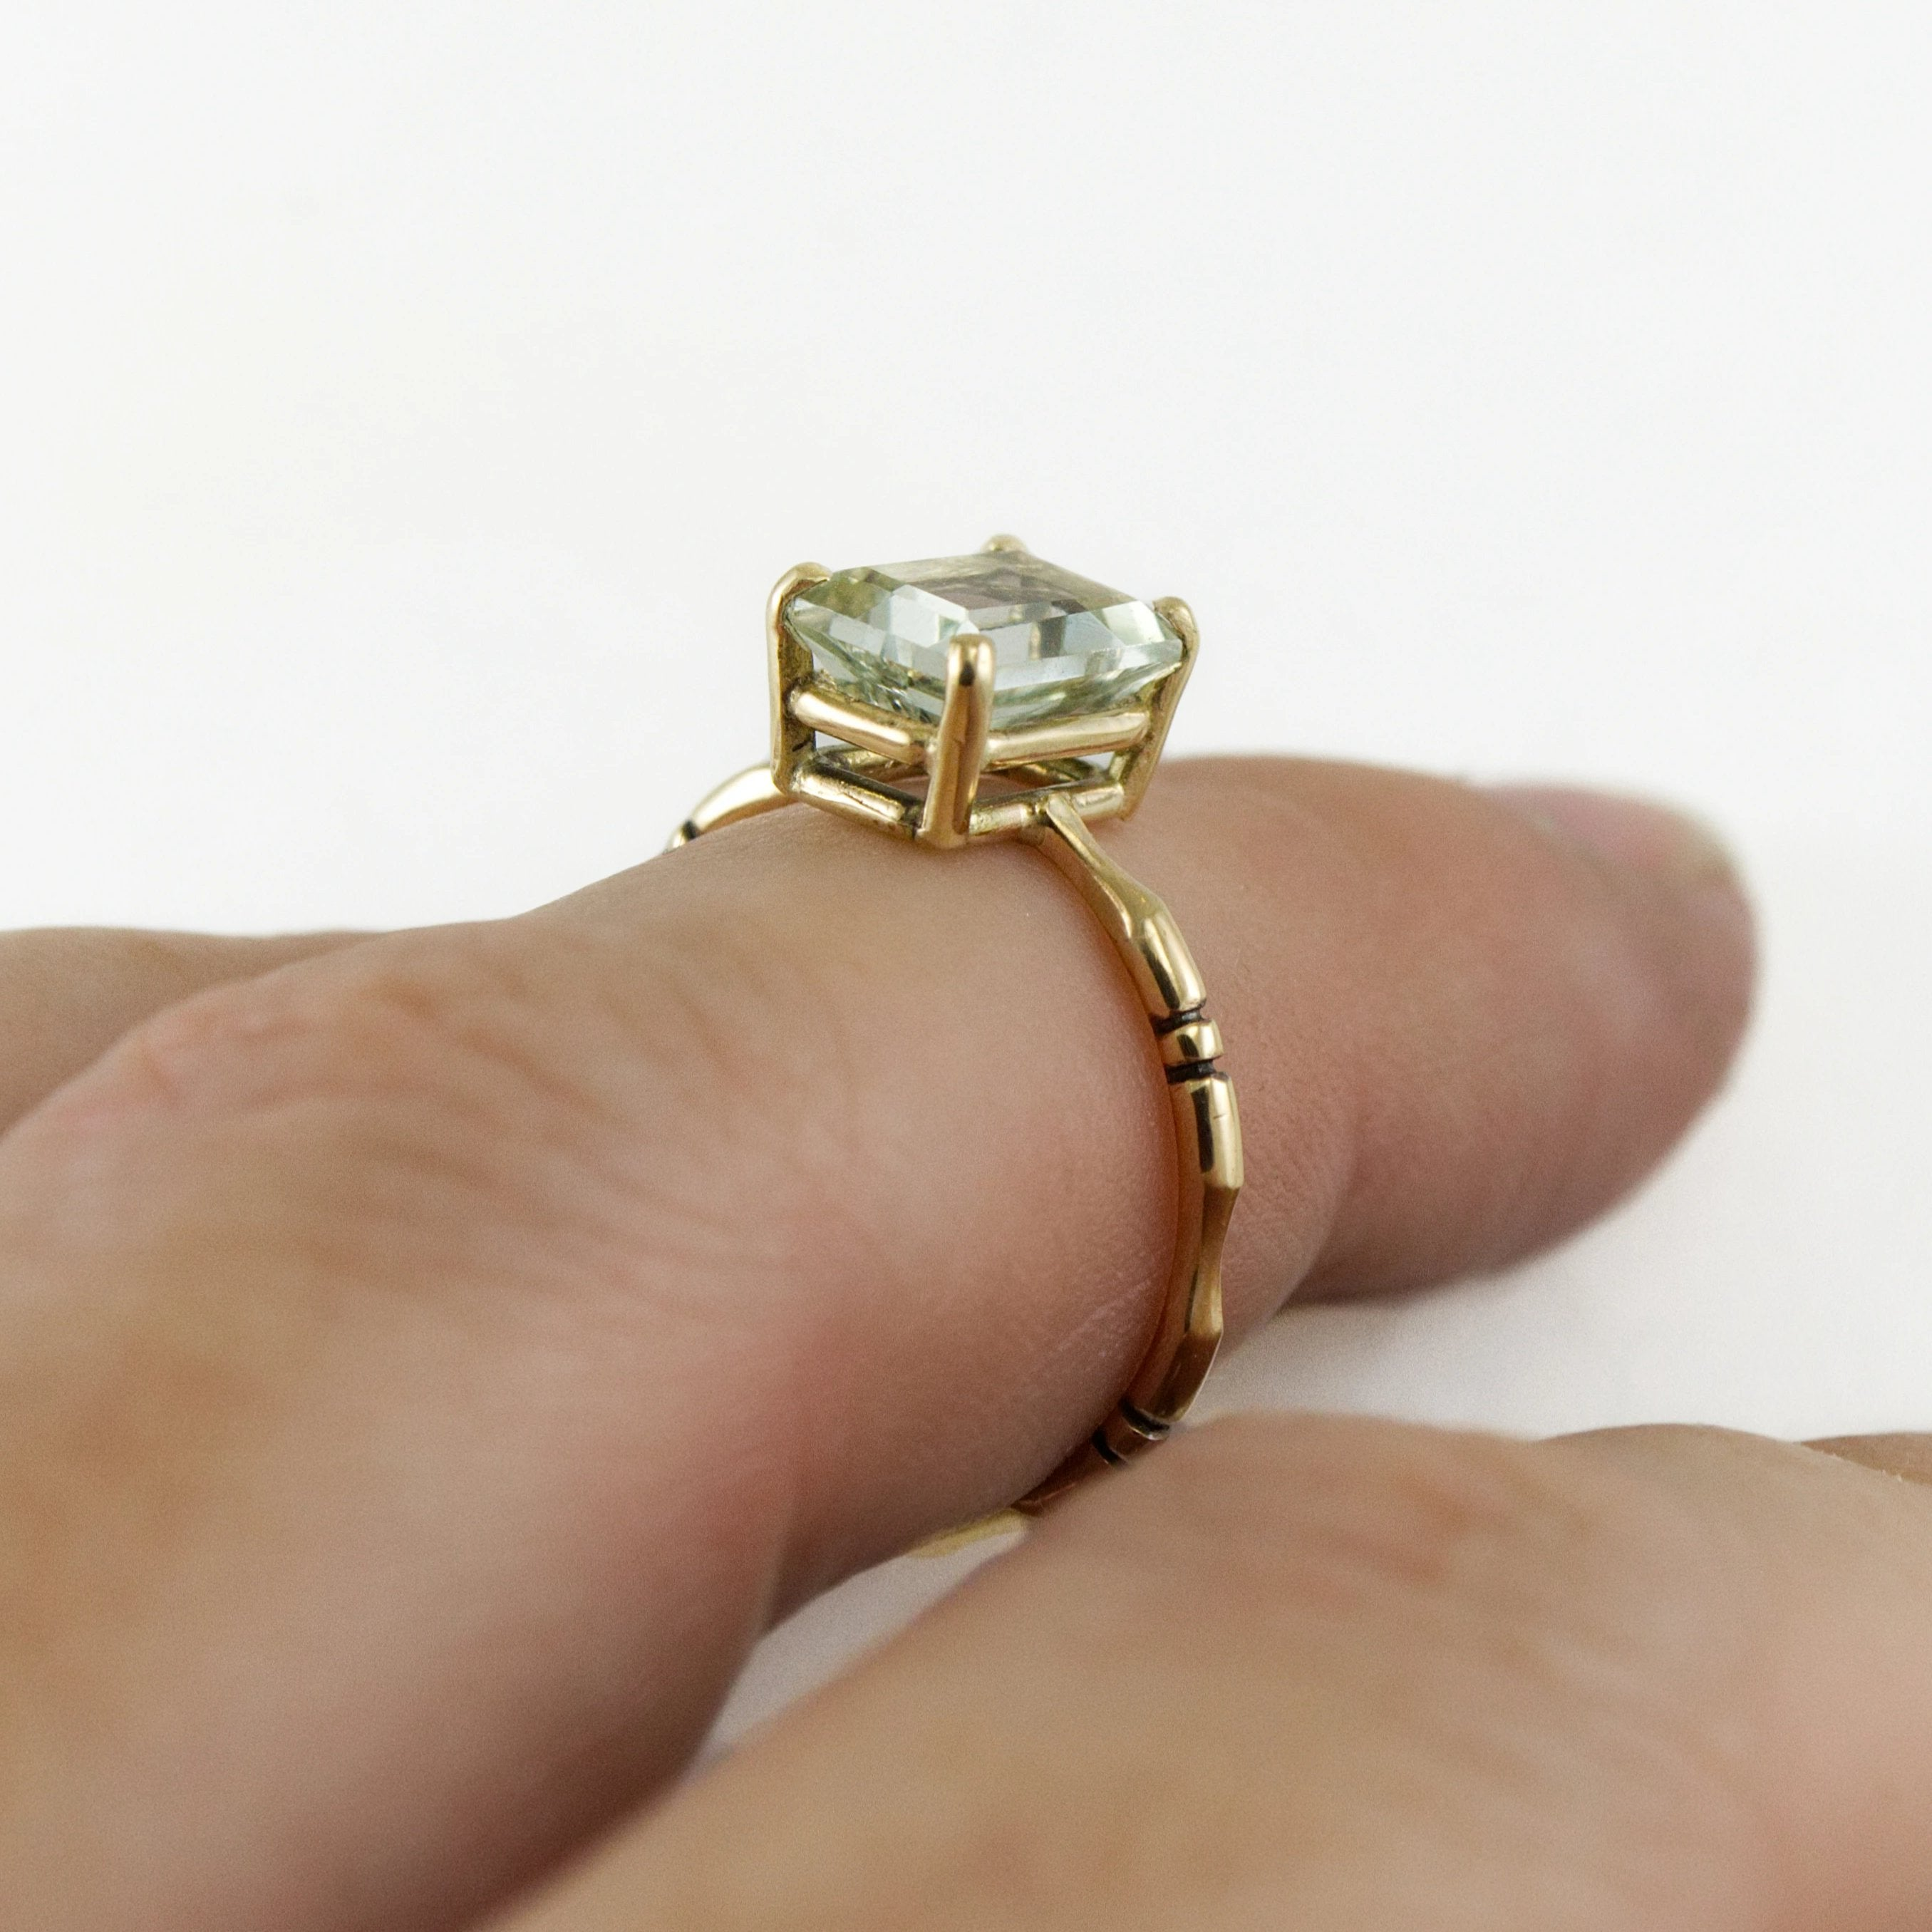 memento mori ring